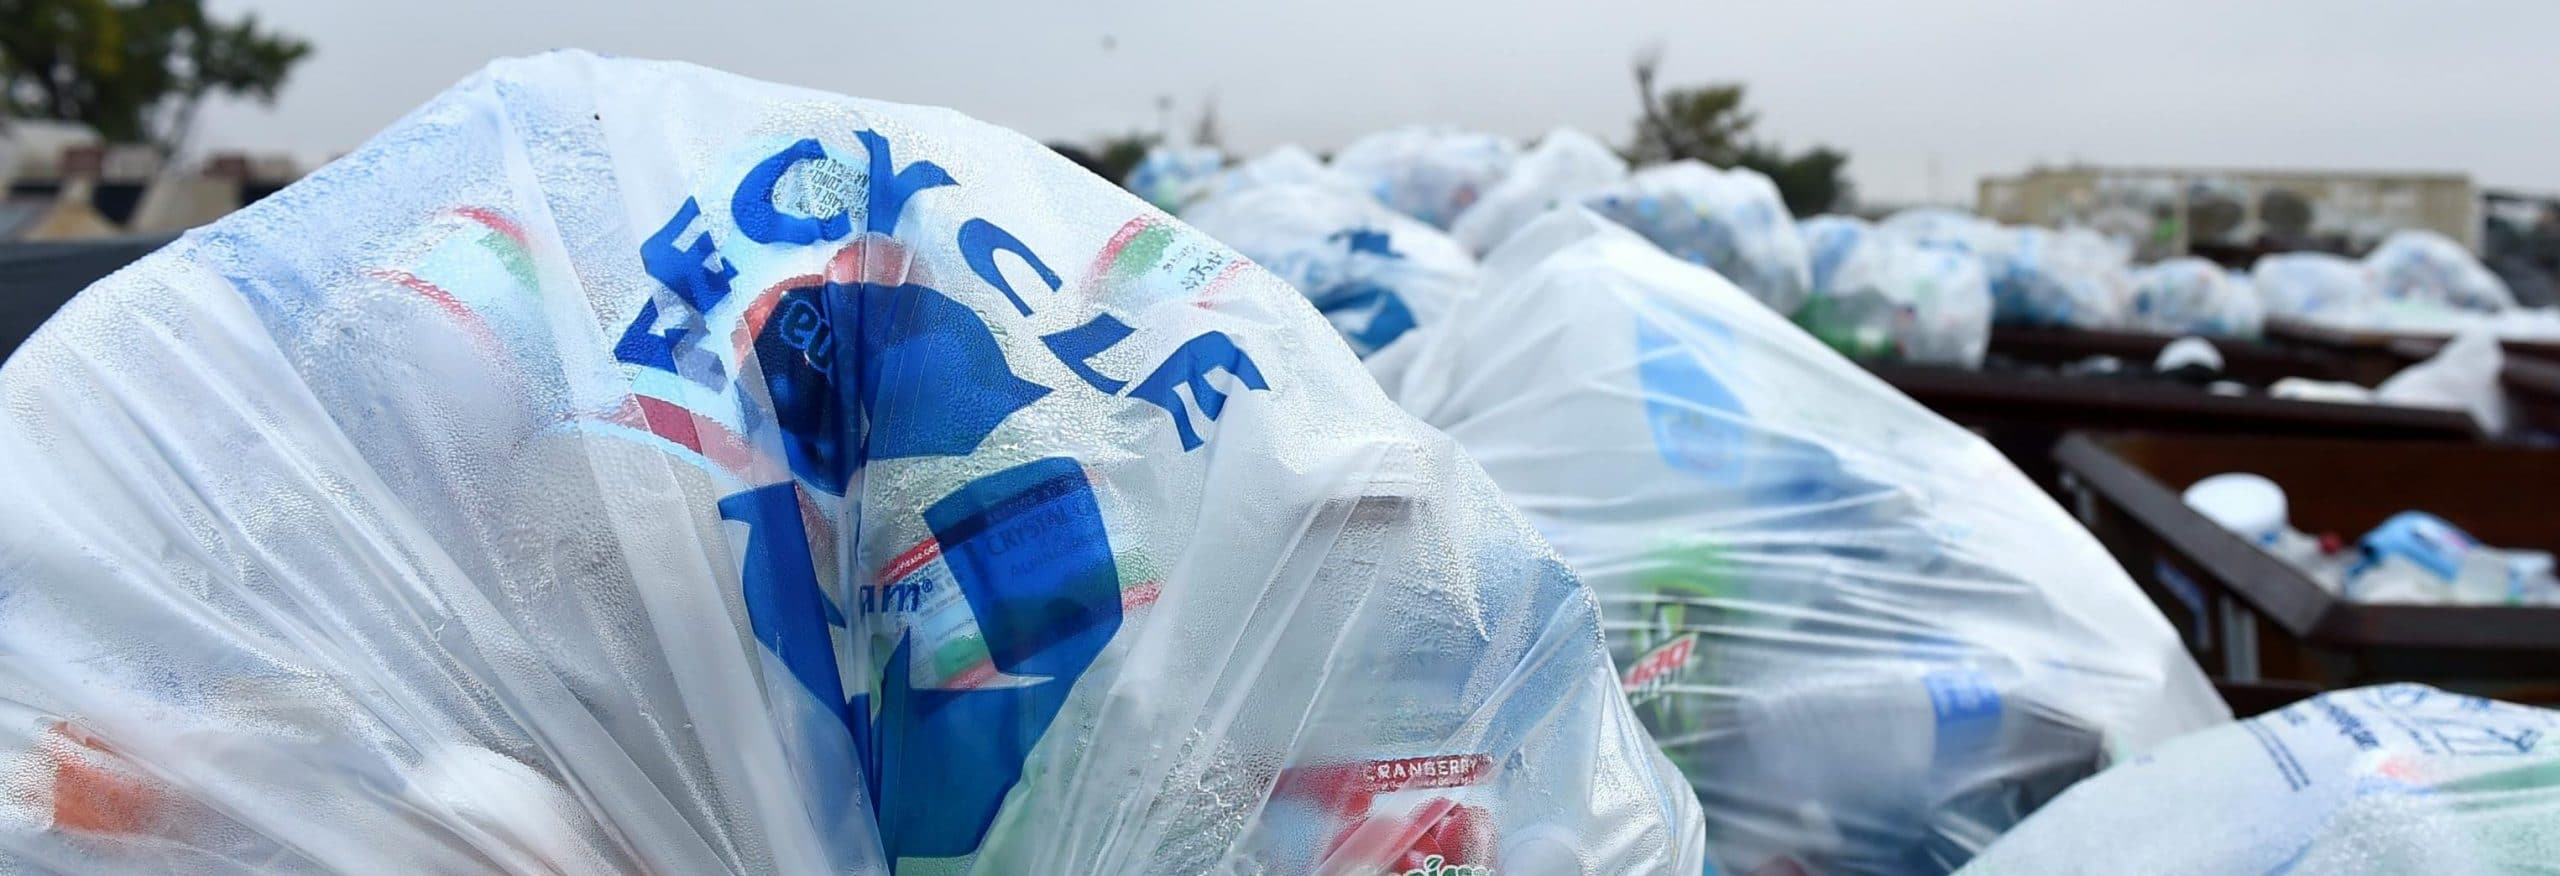 Are plastic bags recyclable?